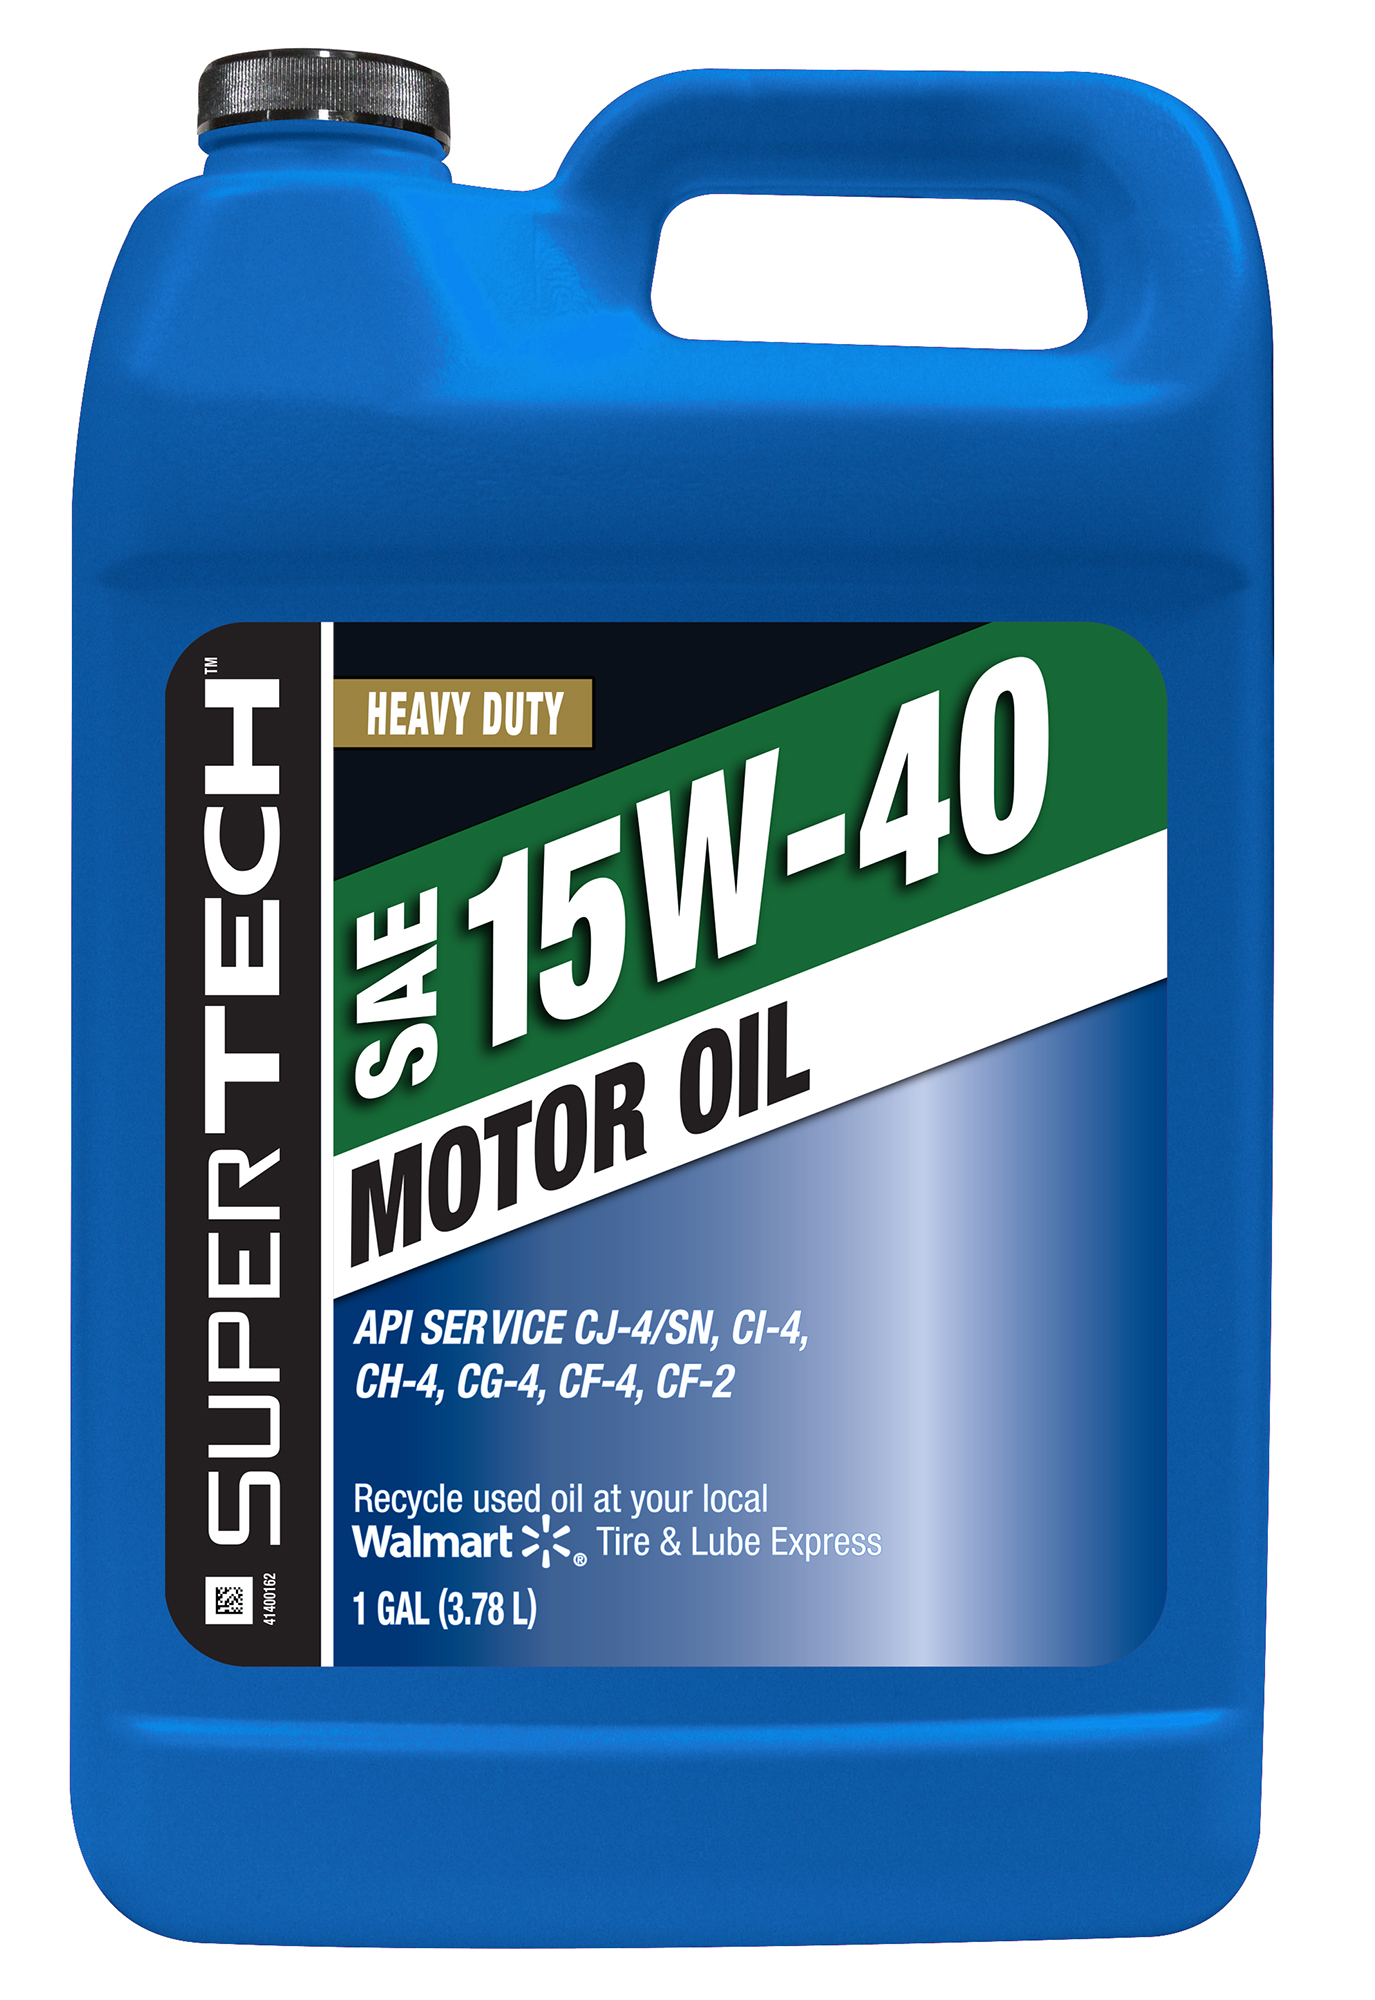 How Much Does 55 Gallons Of Motor Oil Weigh Caferacer